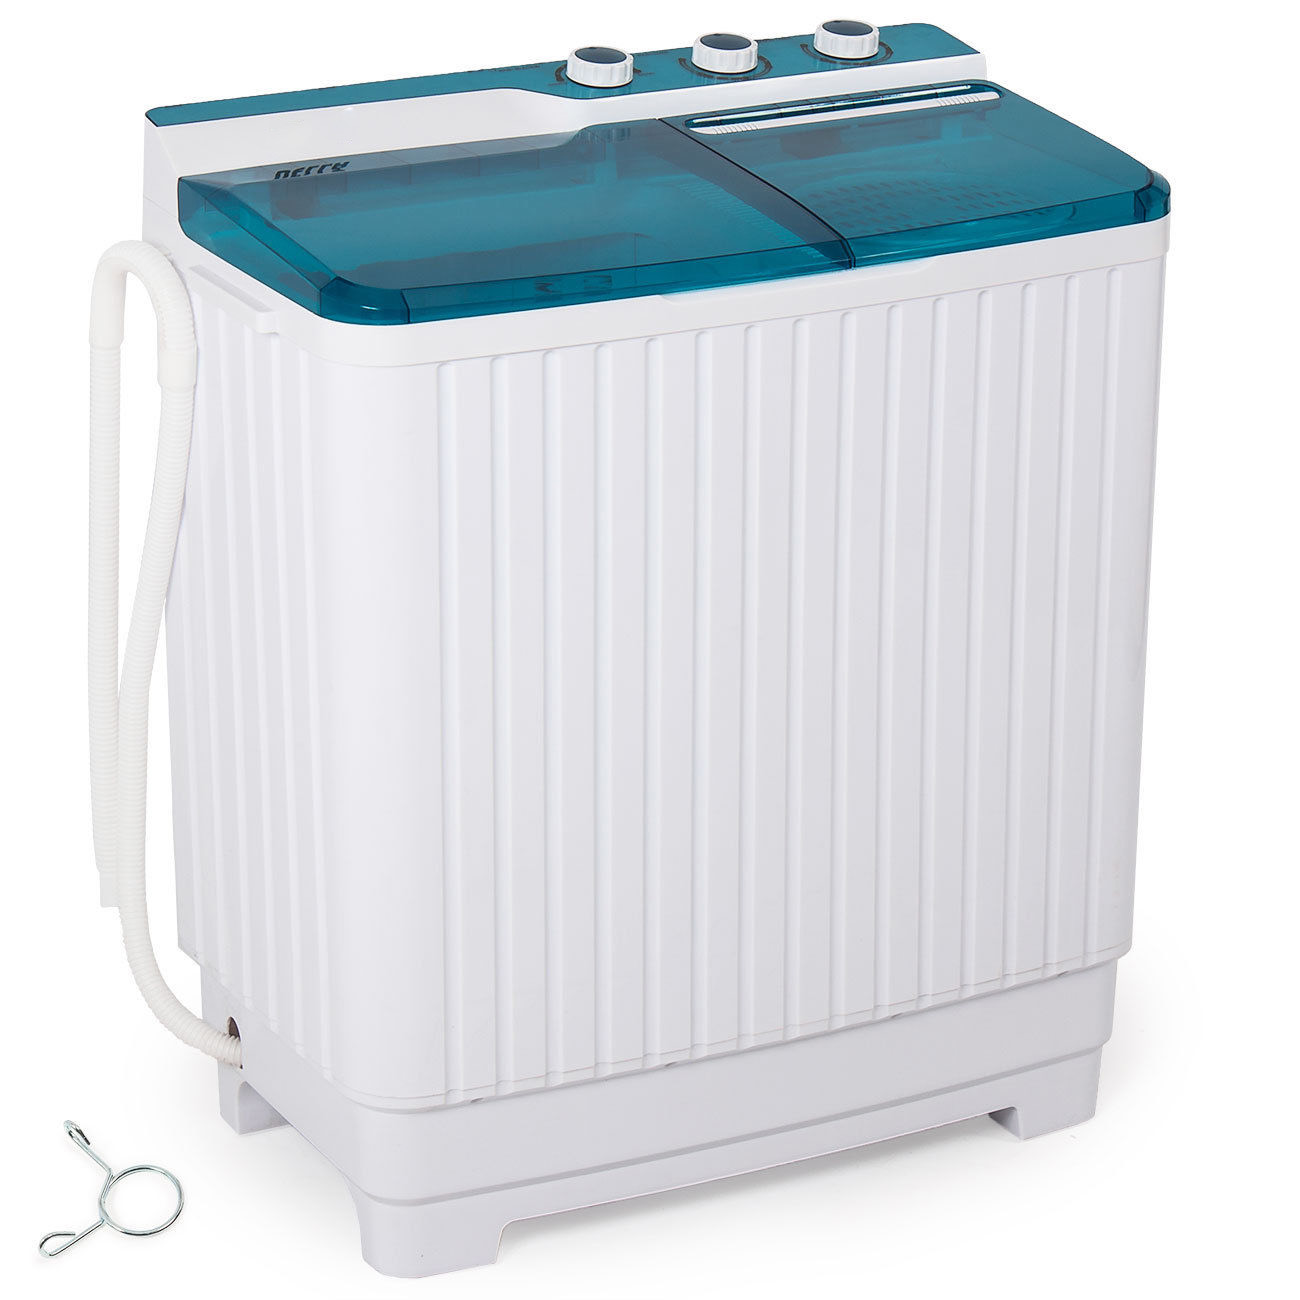 GHP 300W 19.8-Lbs Load Capacity White & Blue Washing Machine with Built-in Drain Pump